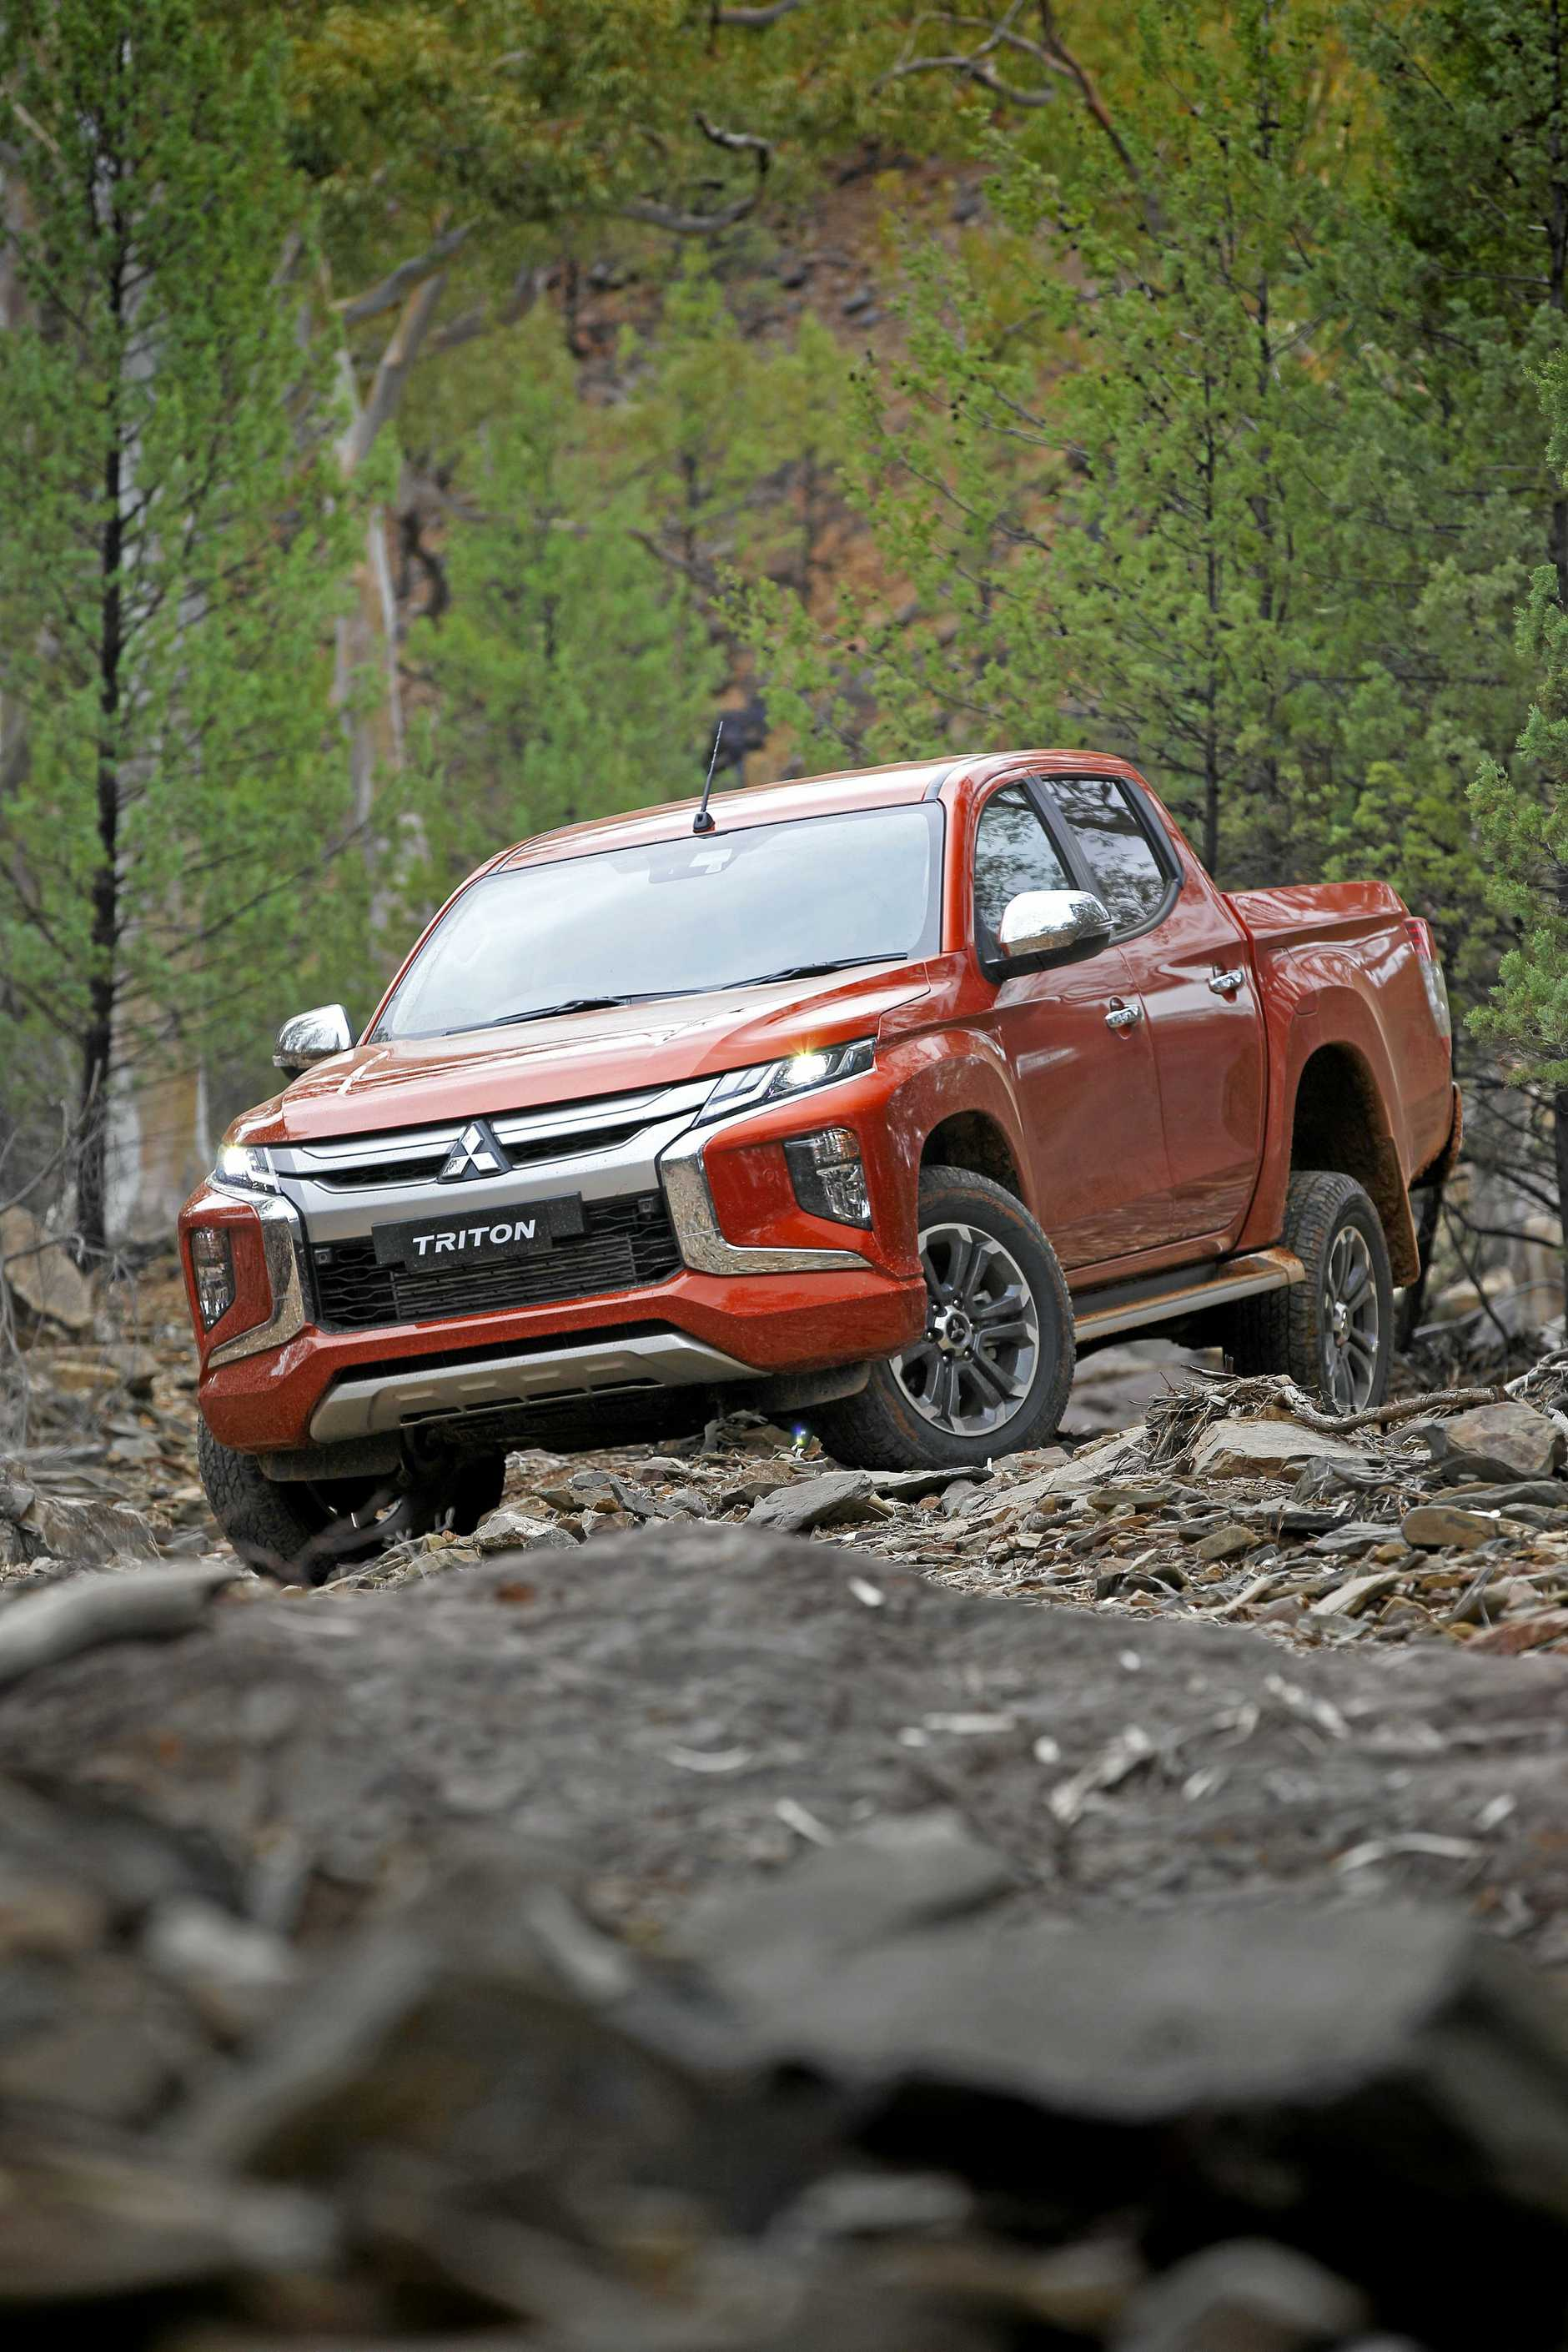 Arriving in Australia during January, the new Mitsubishi Triton will have tougher looks and improved safety kit.